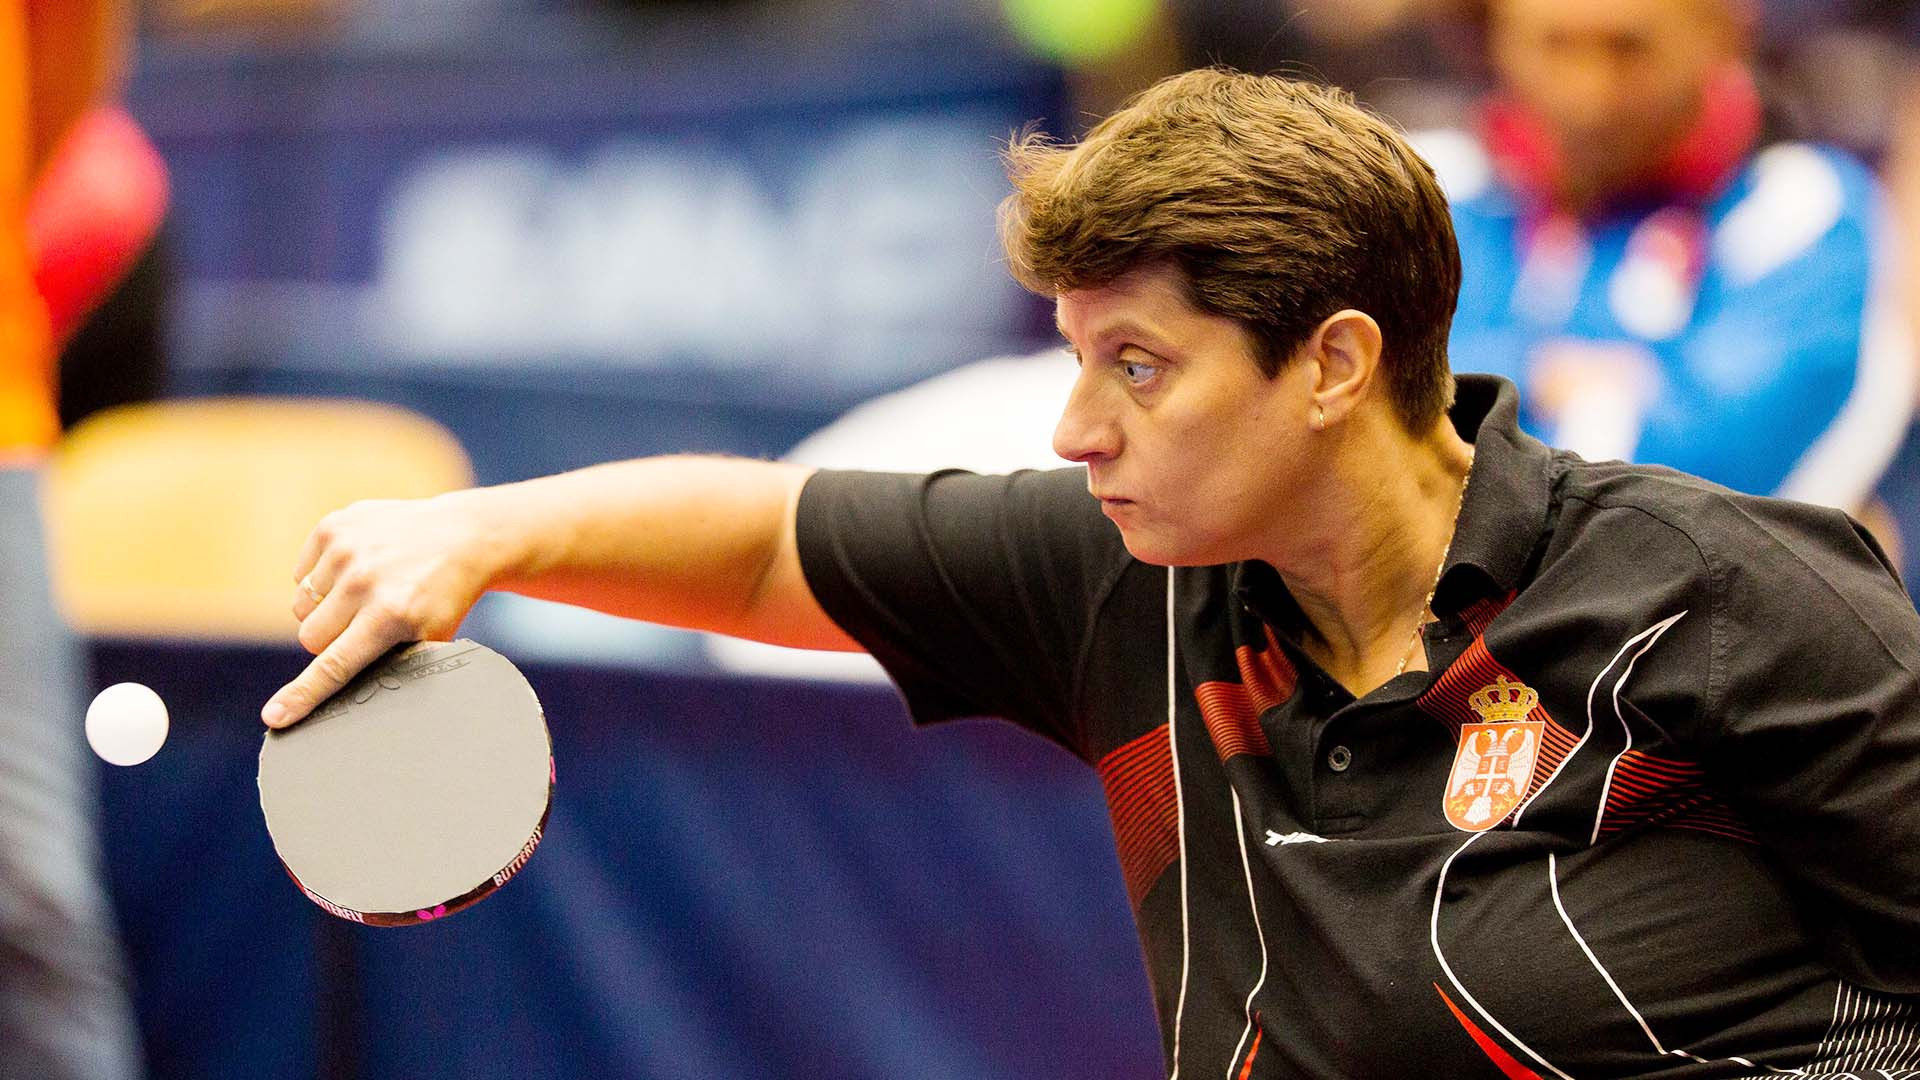 Rio 2016 champion adds team gold to individual success at European Para Table Tennis Championships